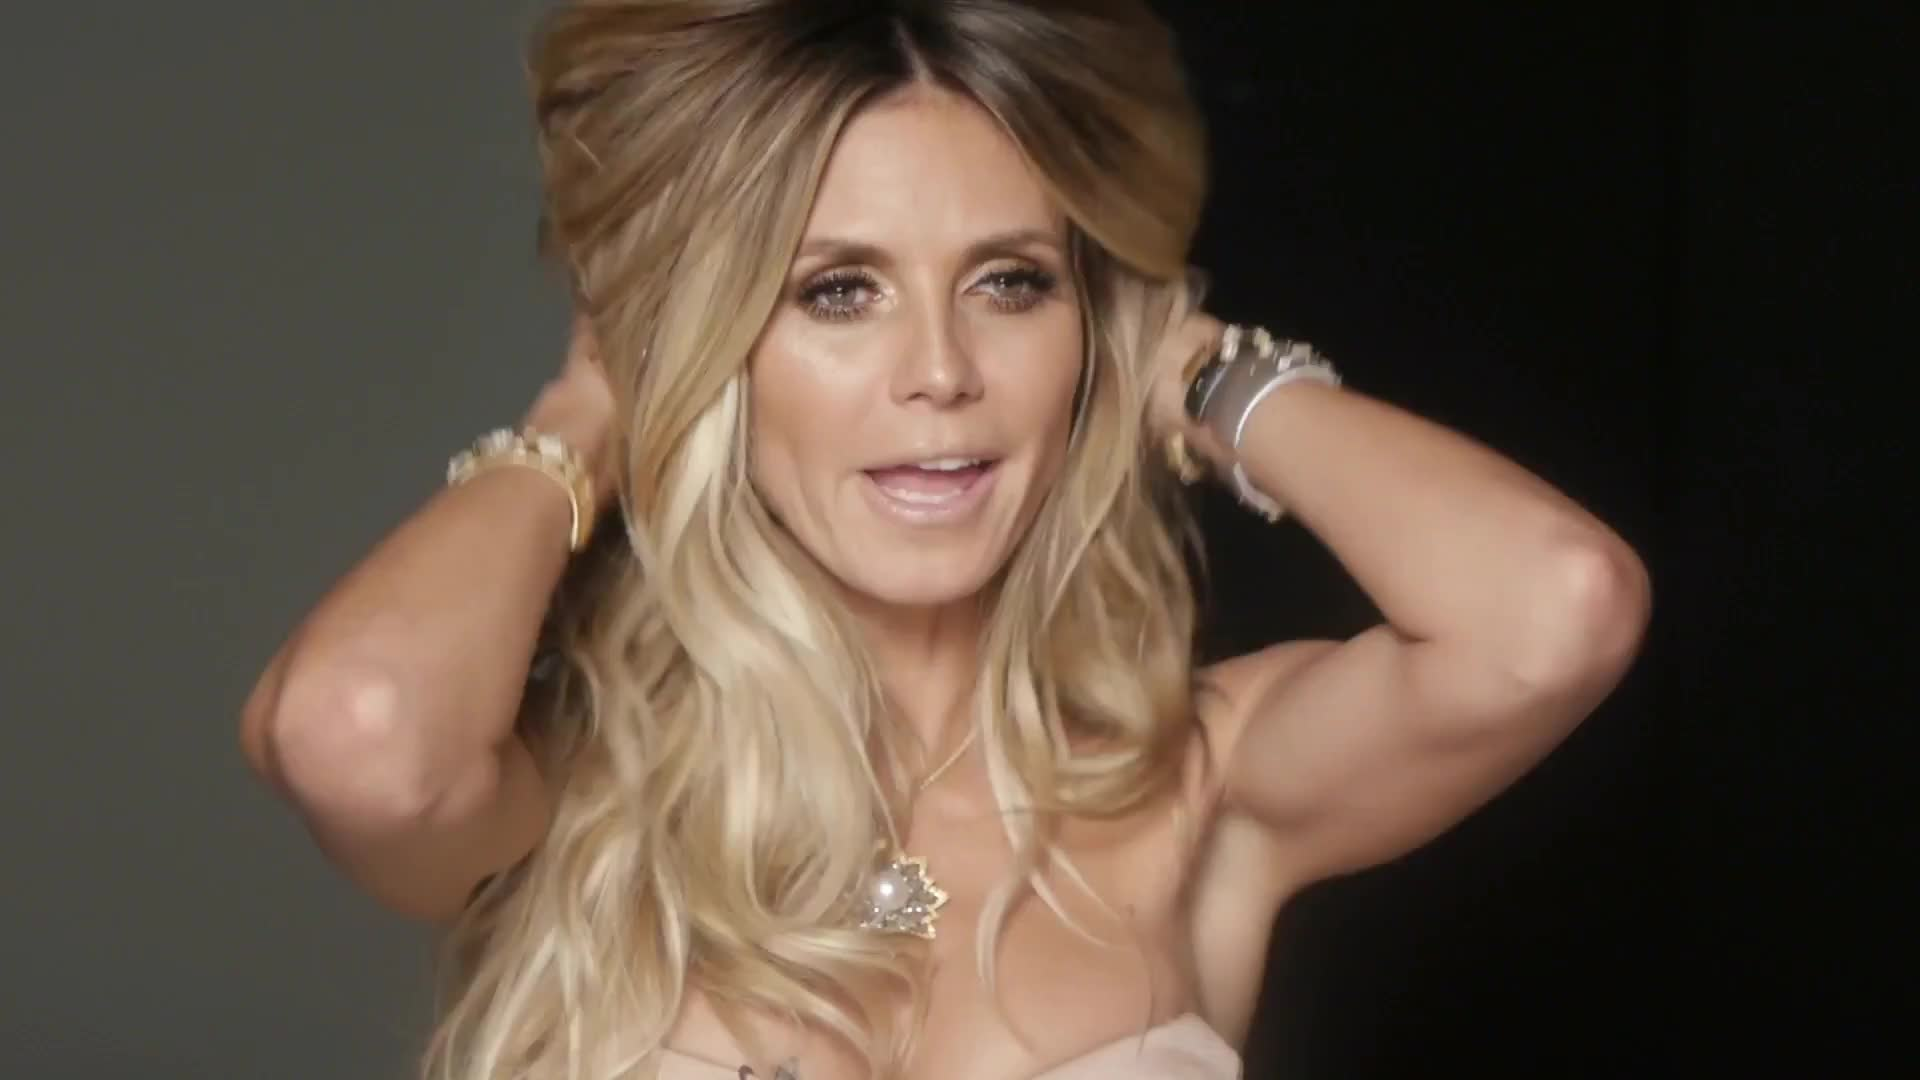 heidi, heidi klum, model, supermodel, Mein Video16 GIFs